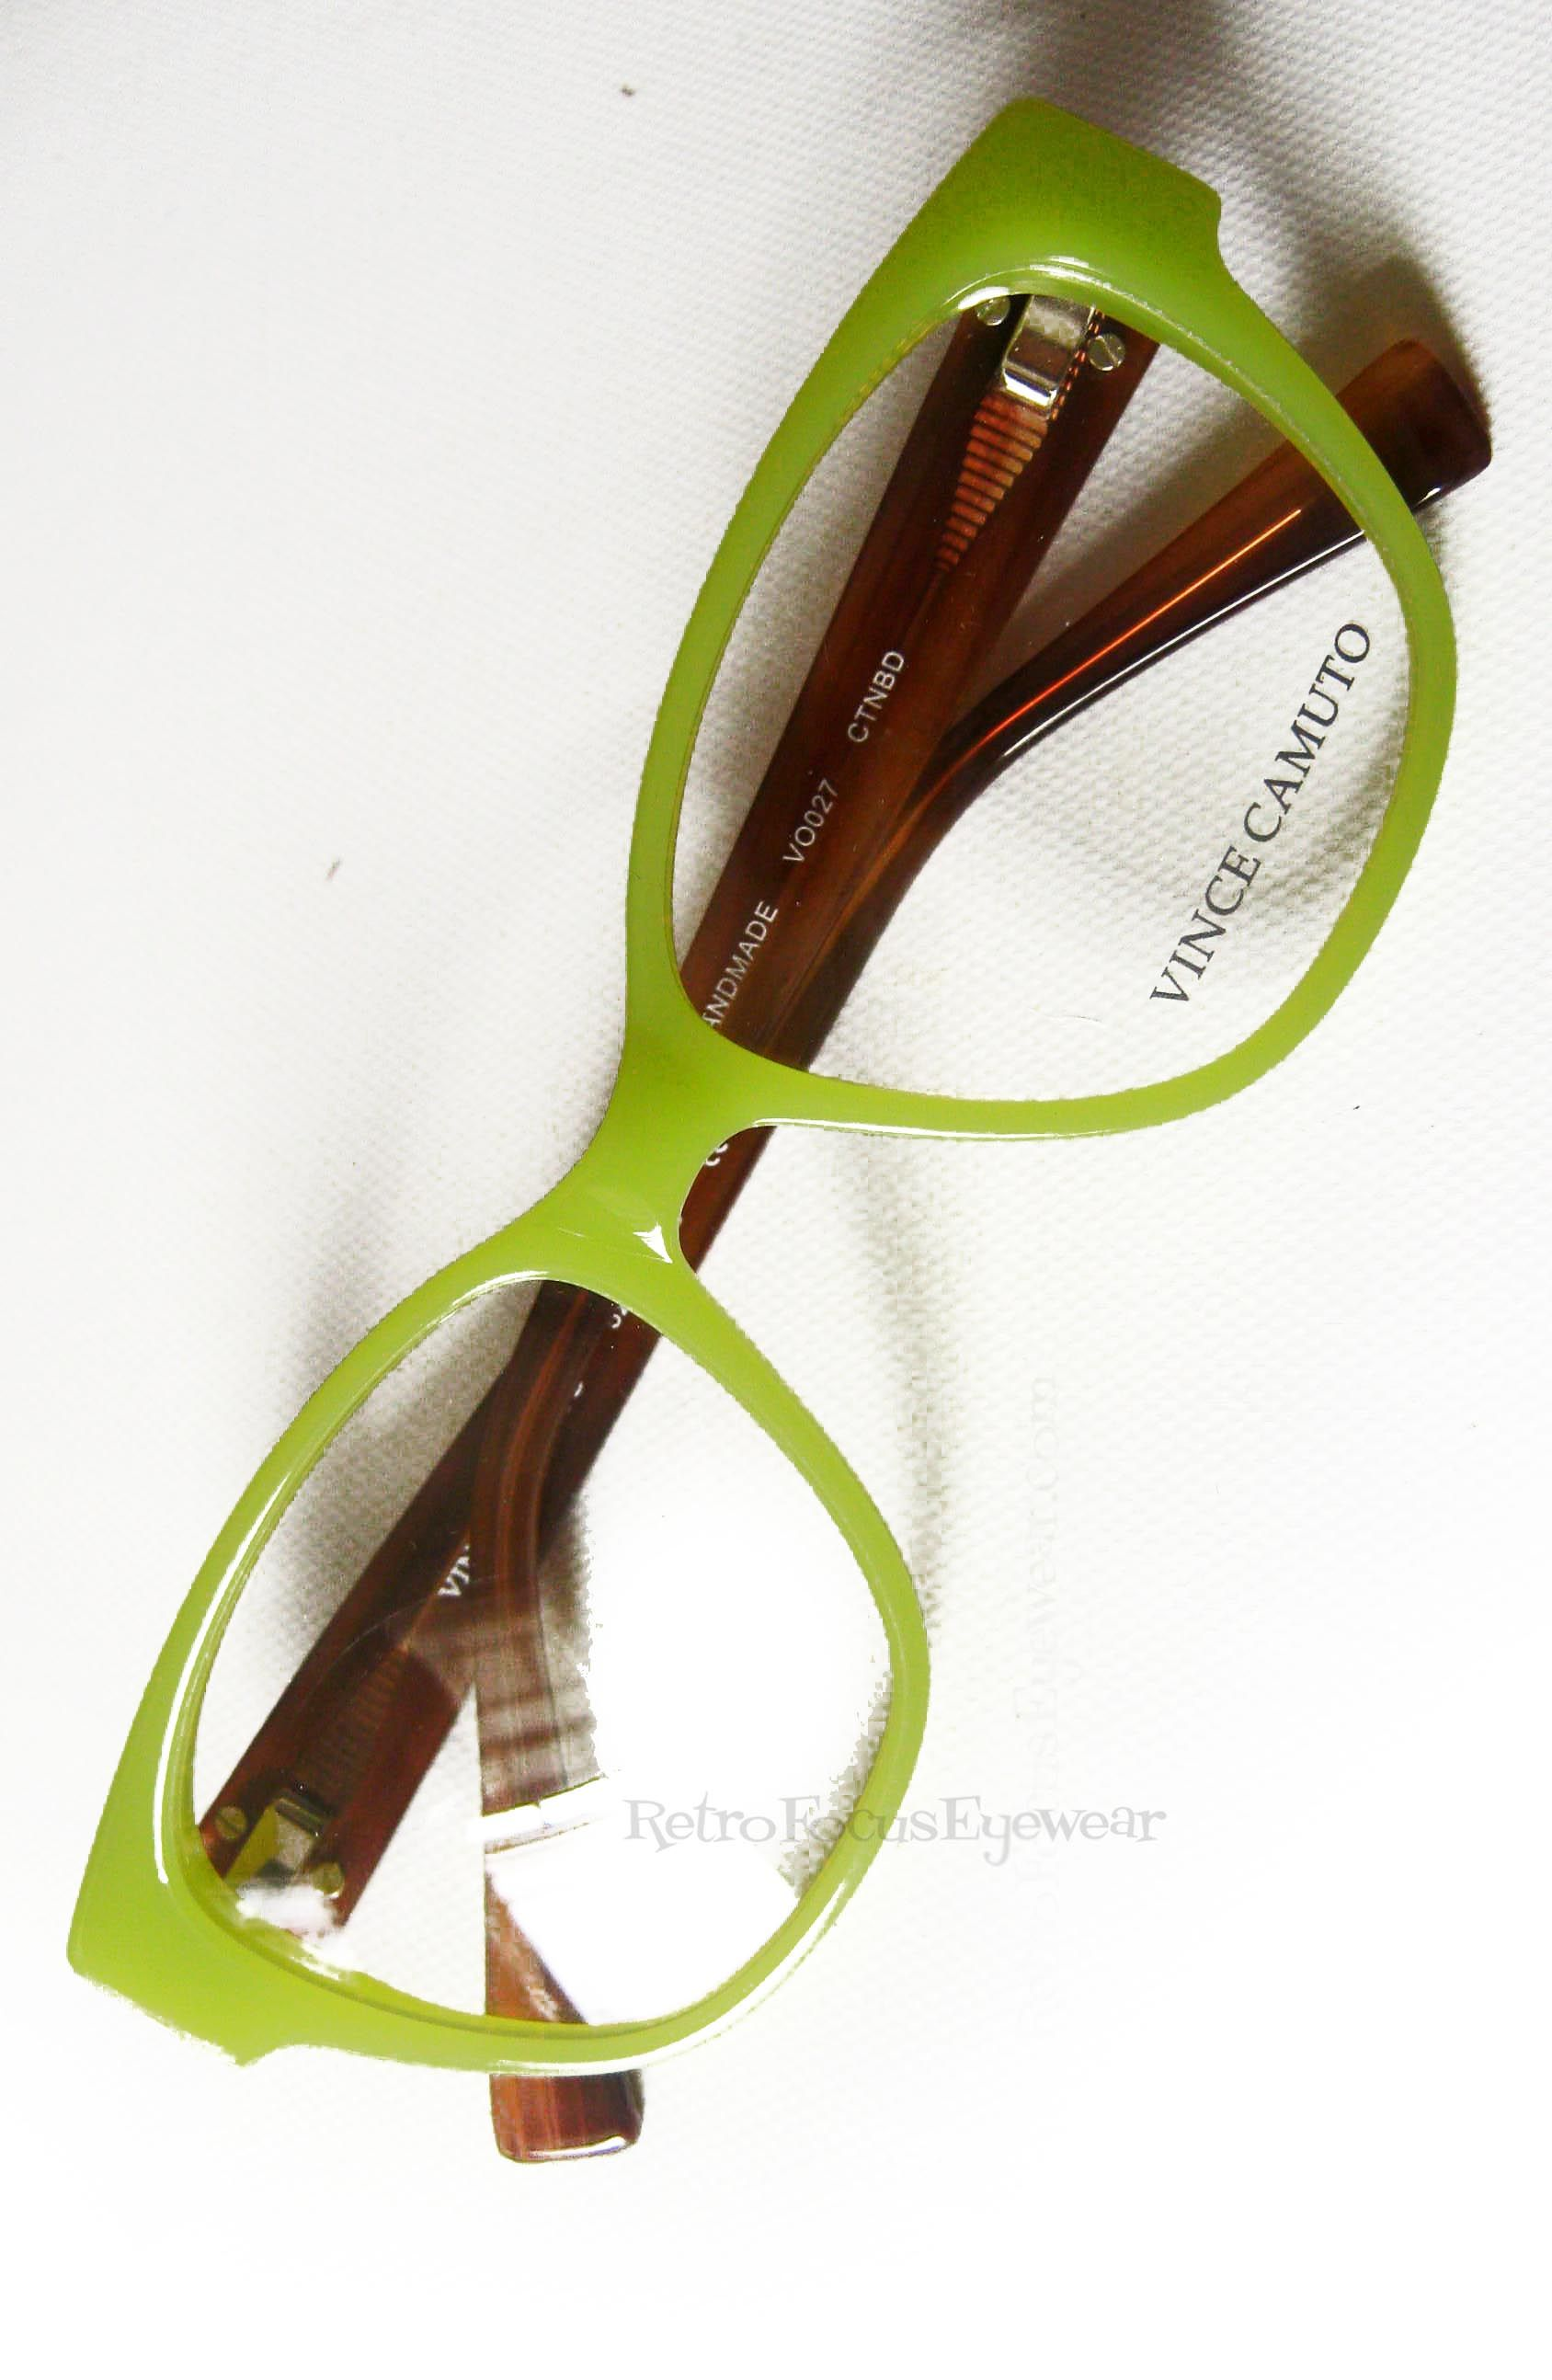 169510e00 Good Morning!!! Grab your cup of caffeine and specs in Kiwi Green 8-)  #reading #glasses #readingglasses #eyeglass #frames